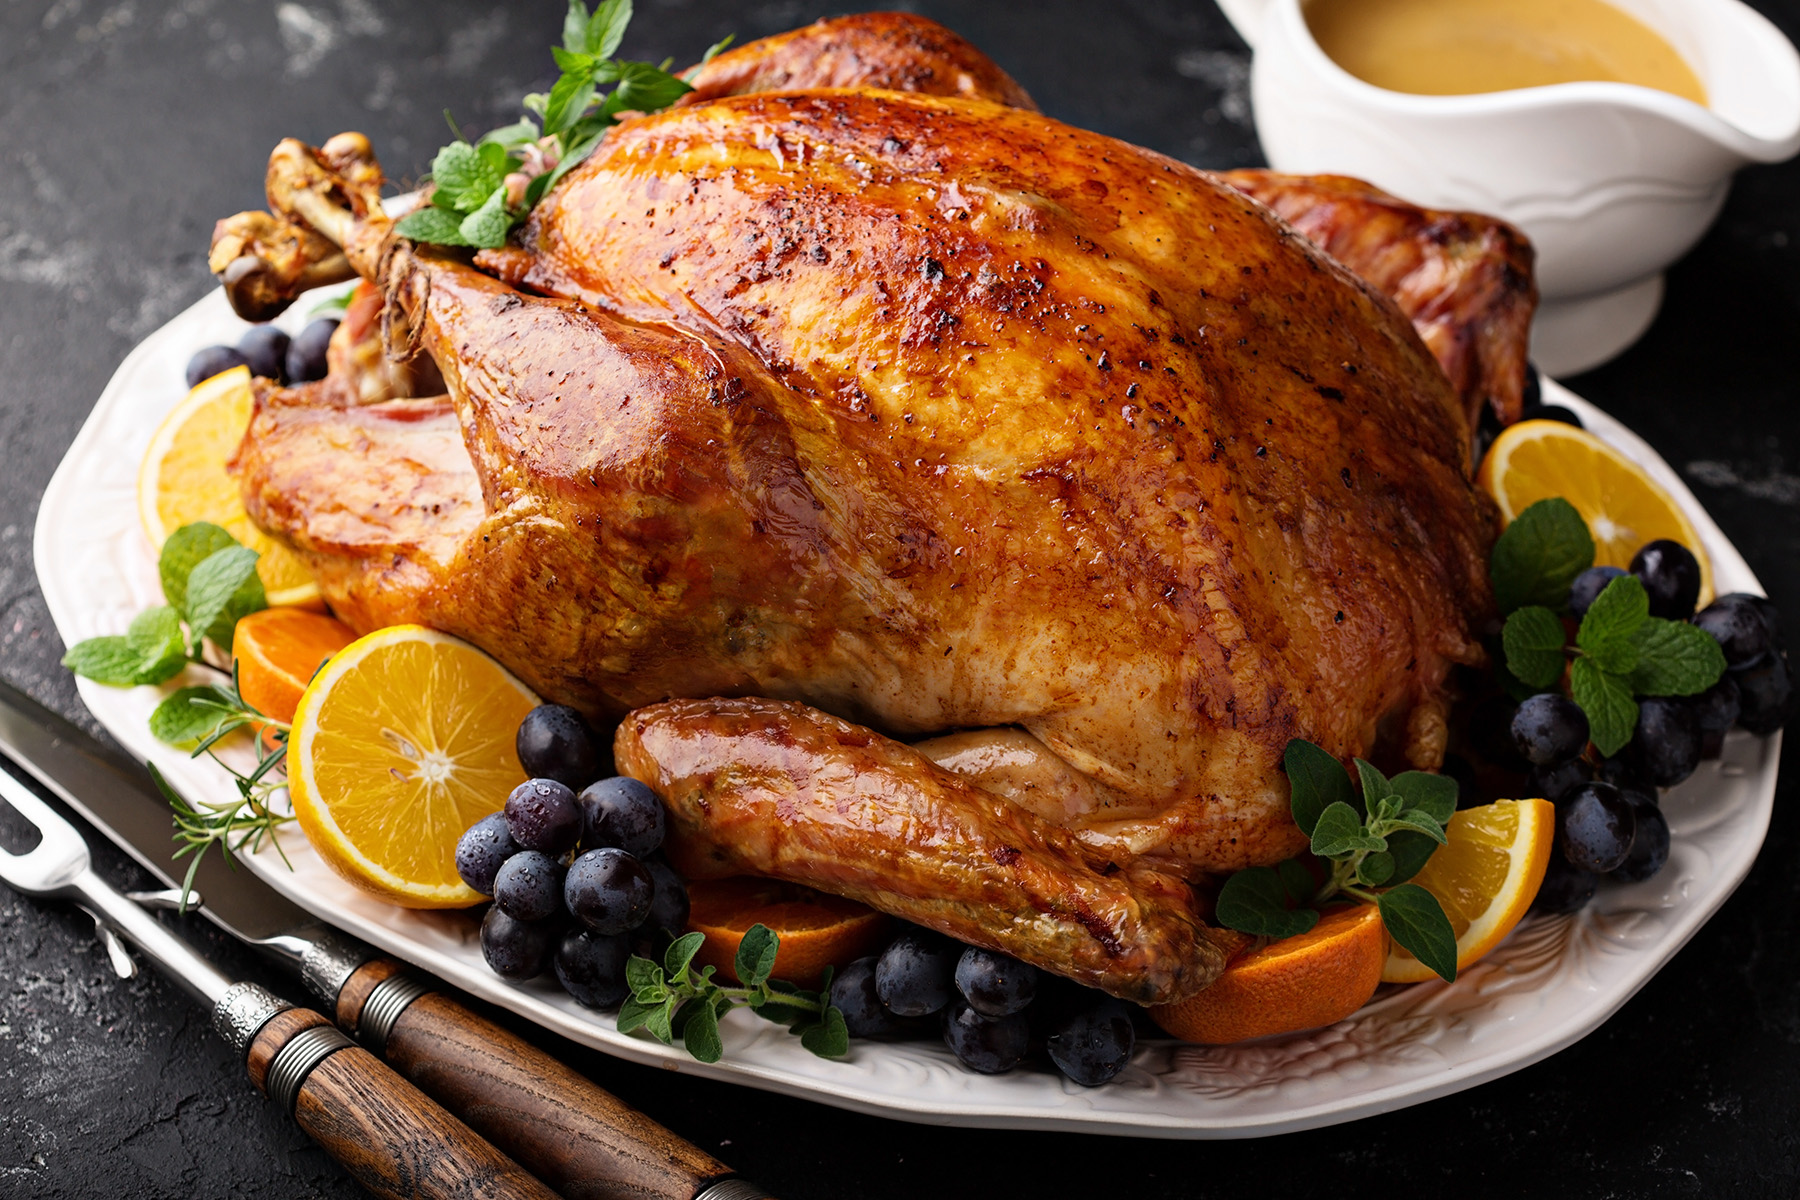 If there's one thing that almost every family agrees on, it's having a turkey as part of a Thanksgiving meal.